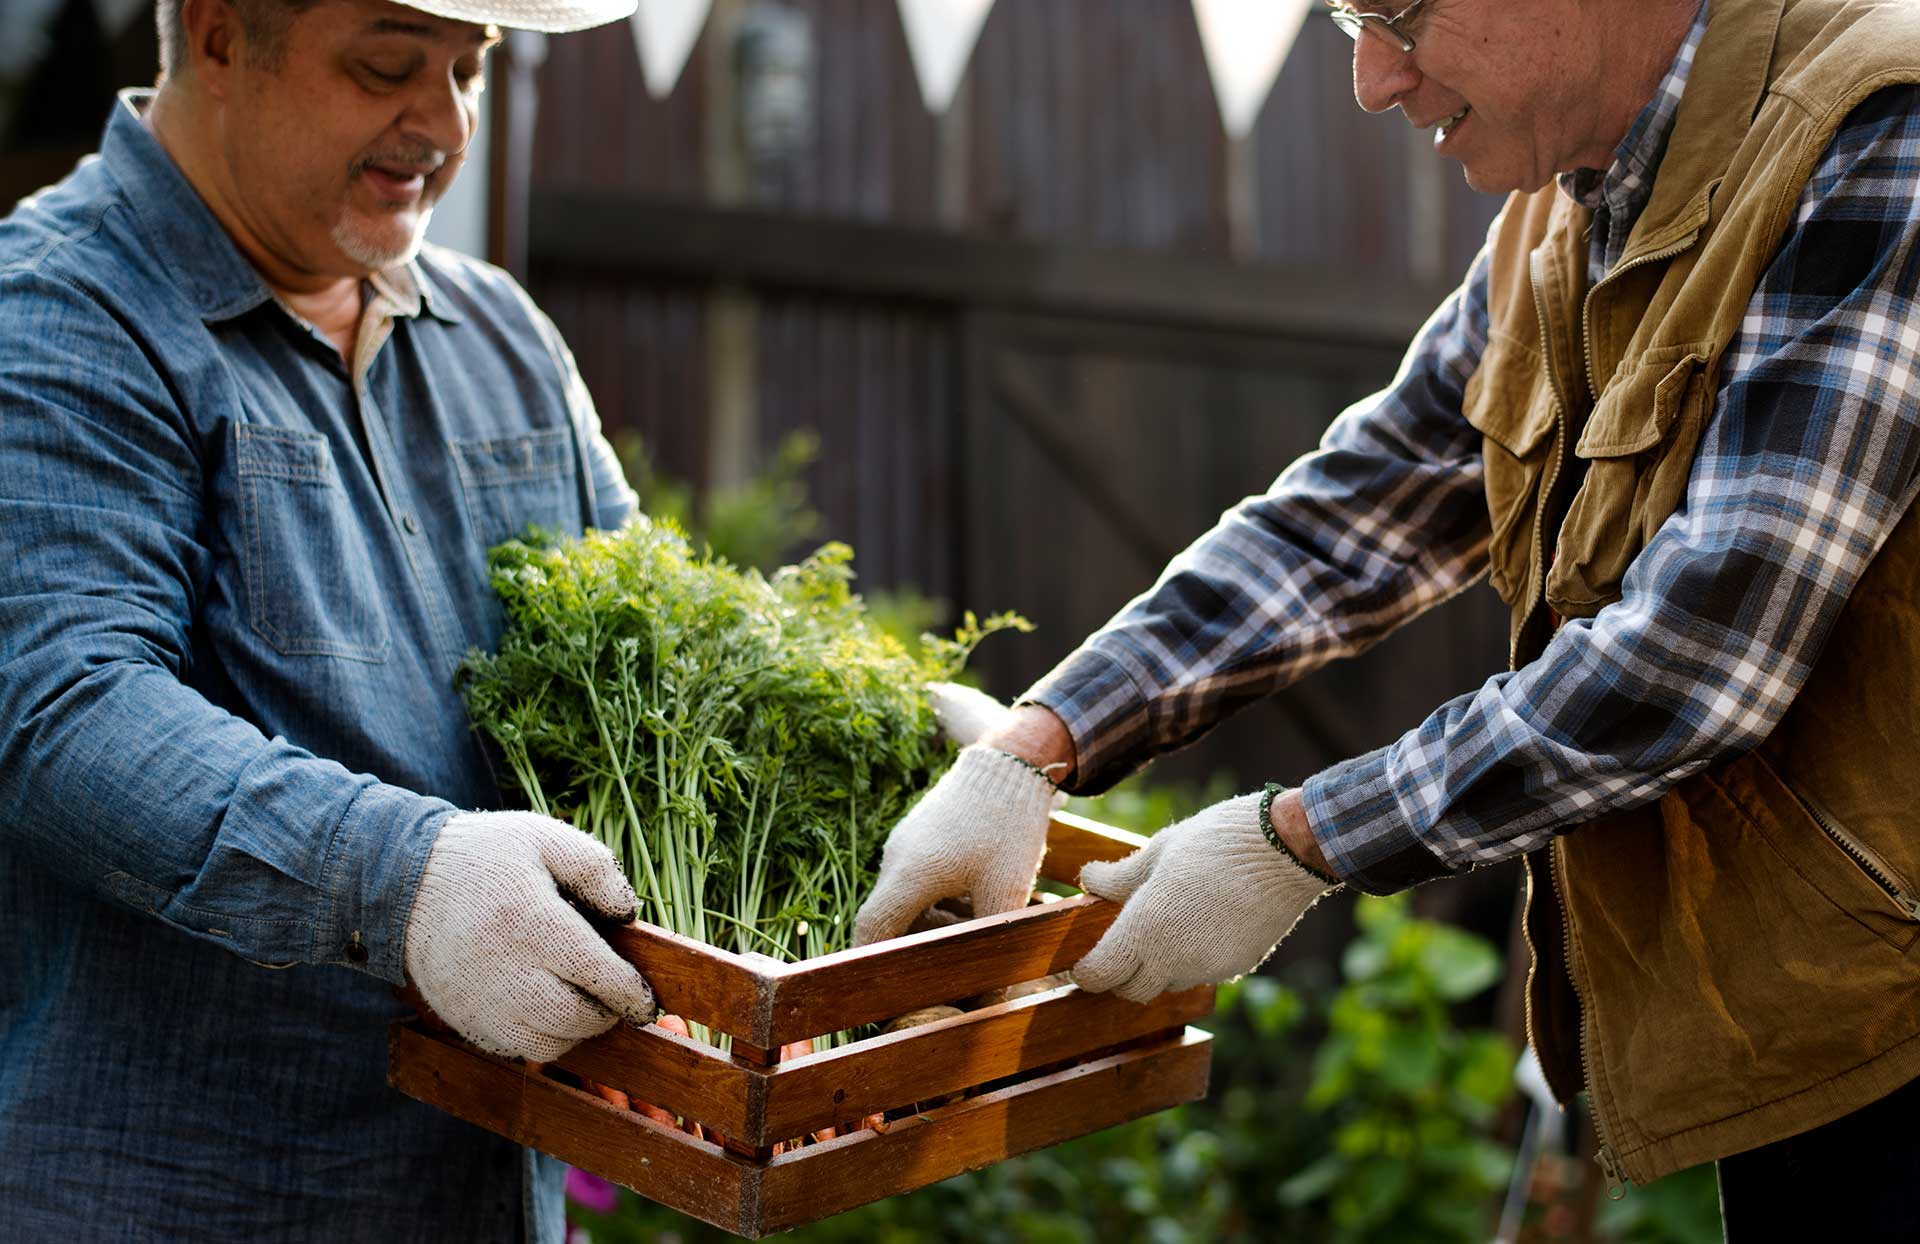 Two men filling a basket with fresh herbs from a garden.